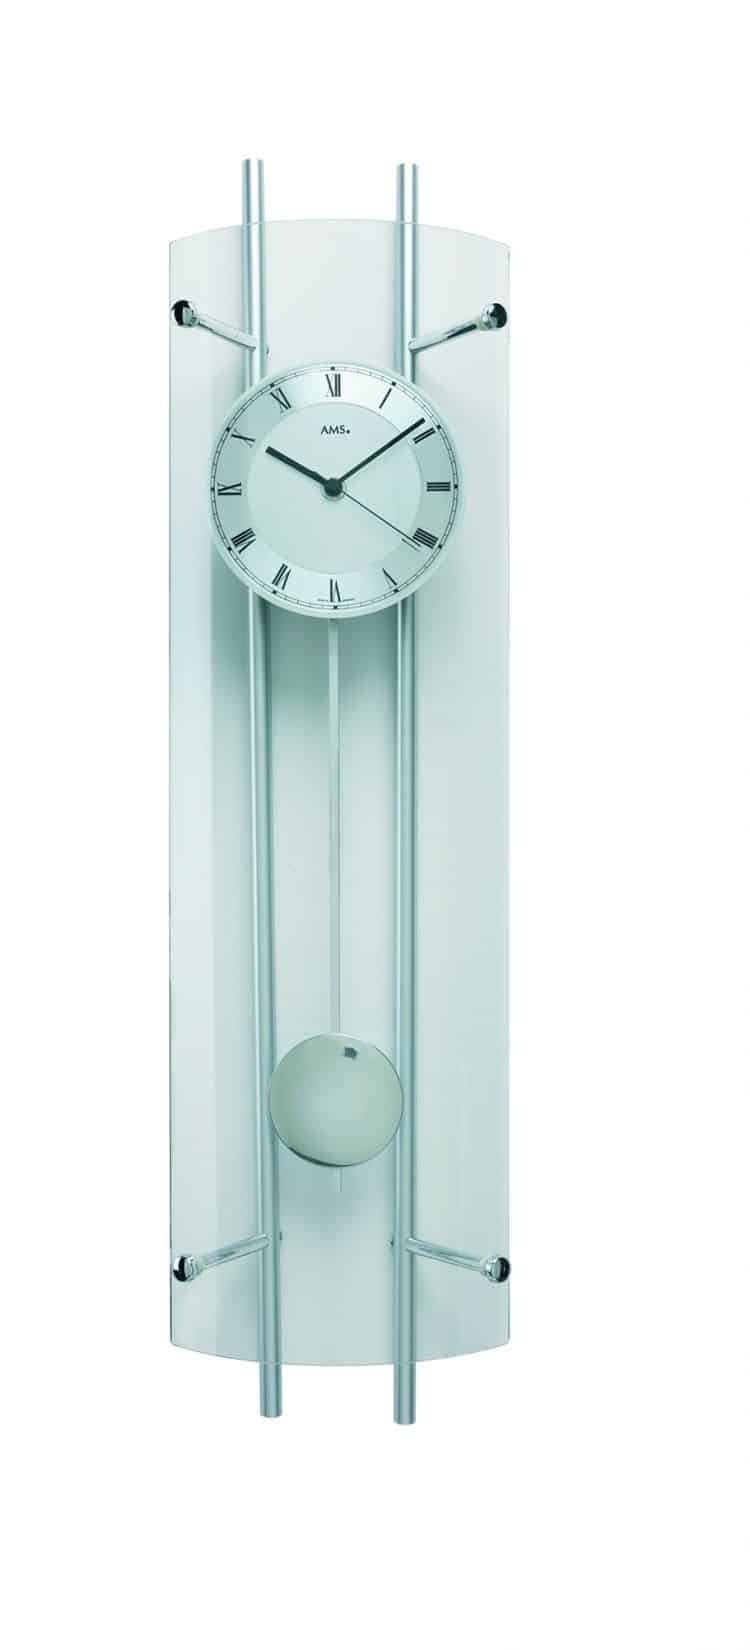 Ams 5225 curved glass wall clock ams clocks for Curved glass wall